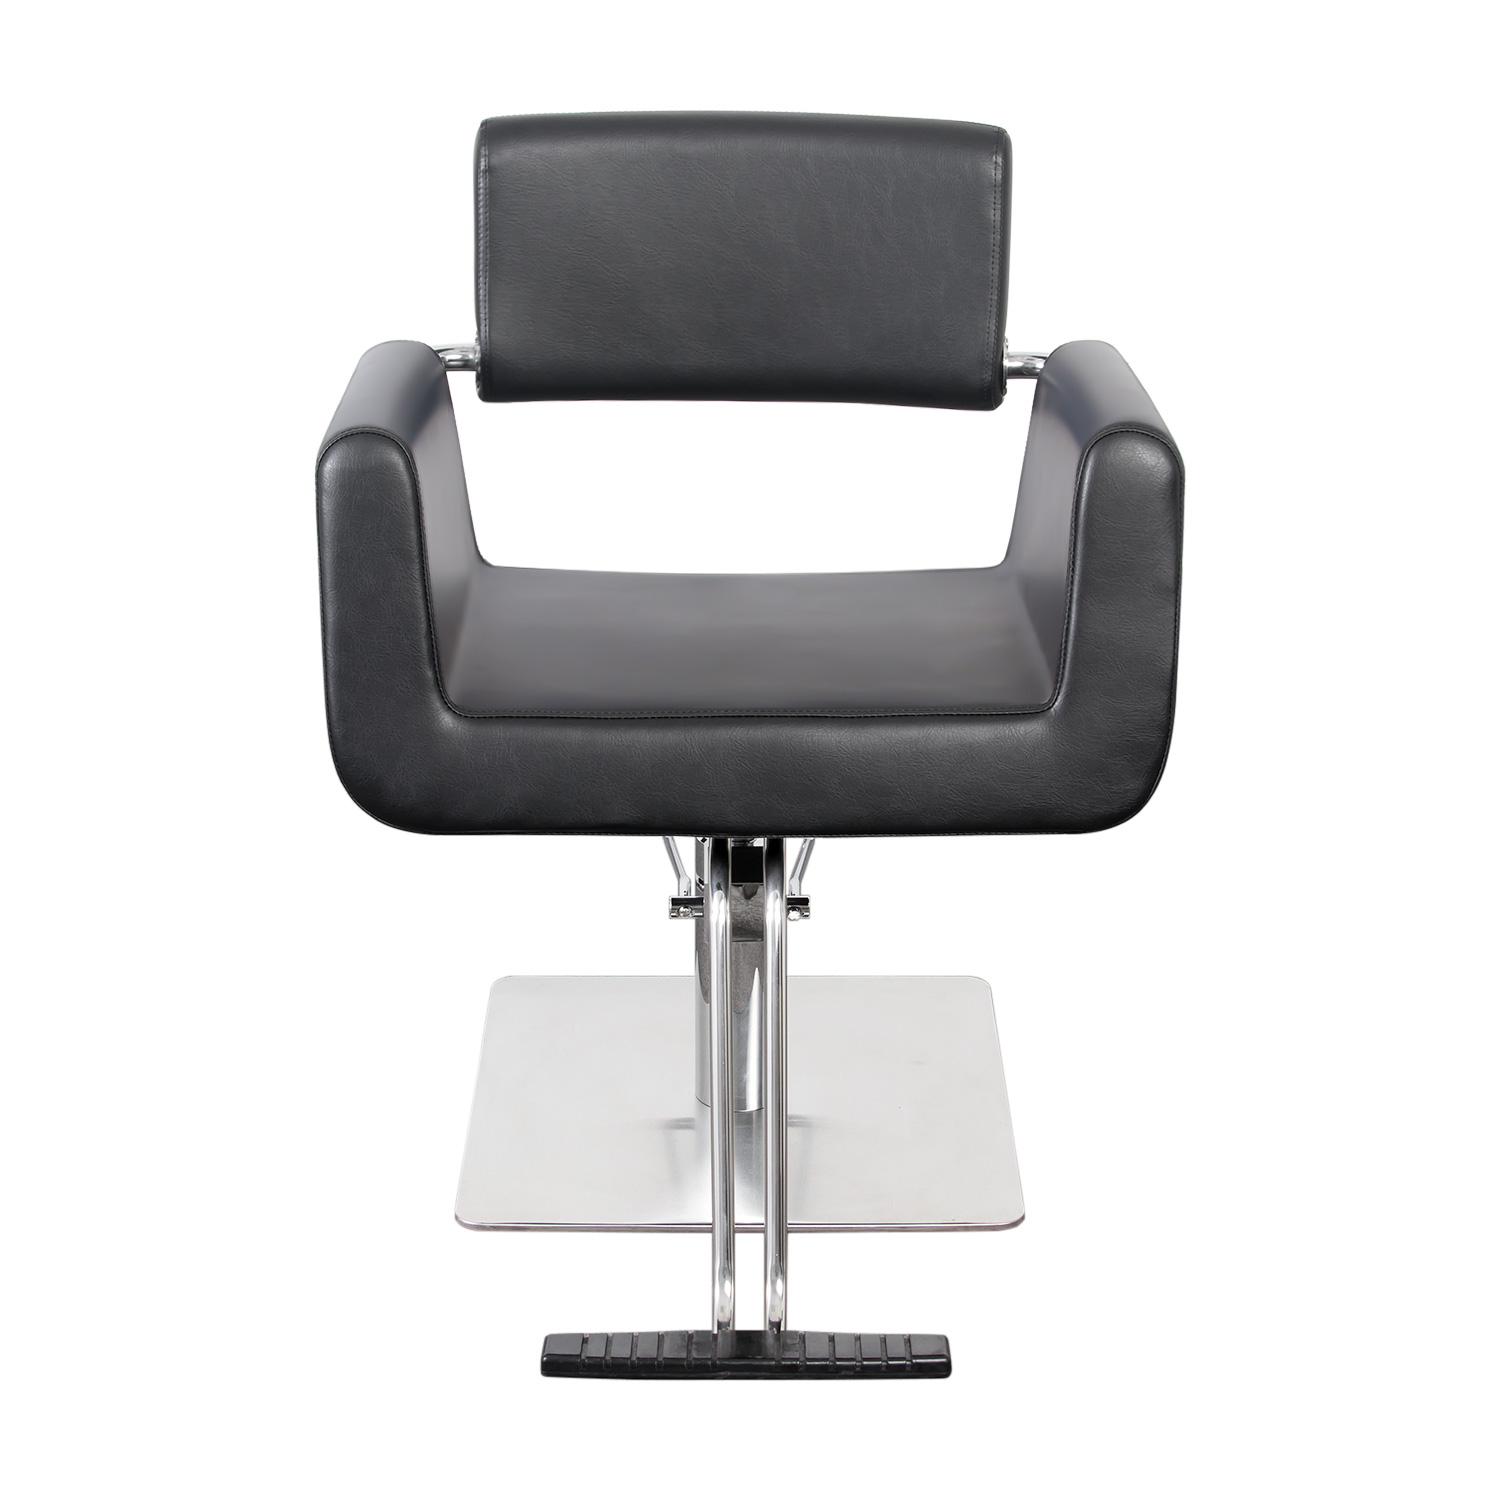 Capelli Modern Hair Chair with Chrome Elbow Brackets alternative product image 5